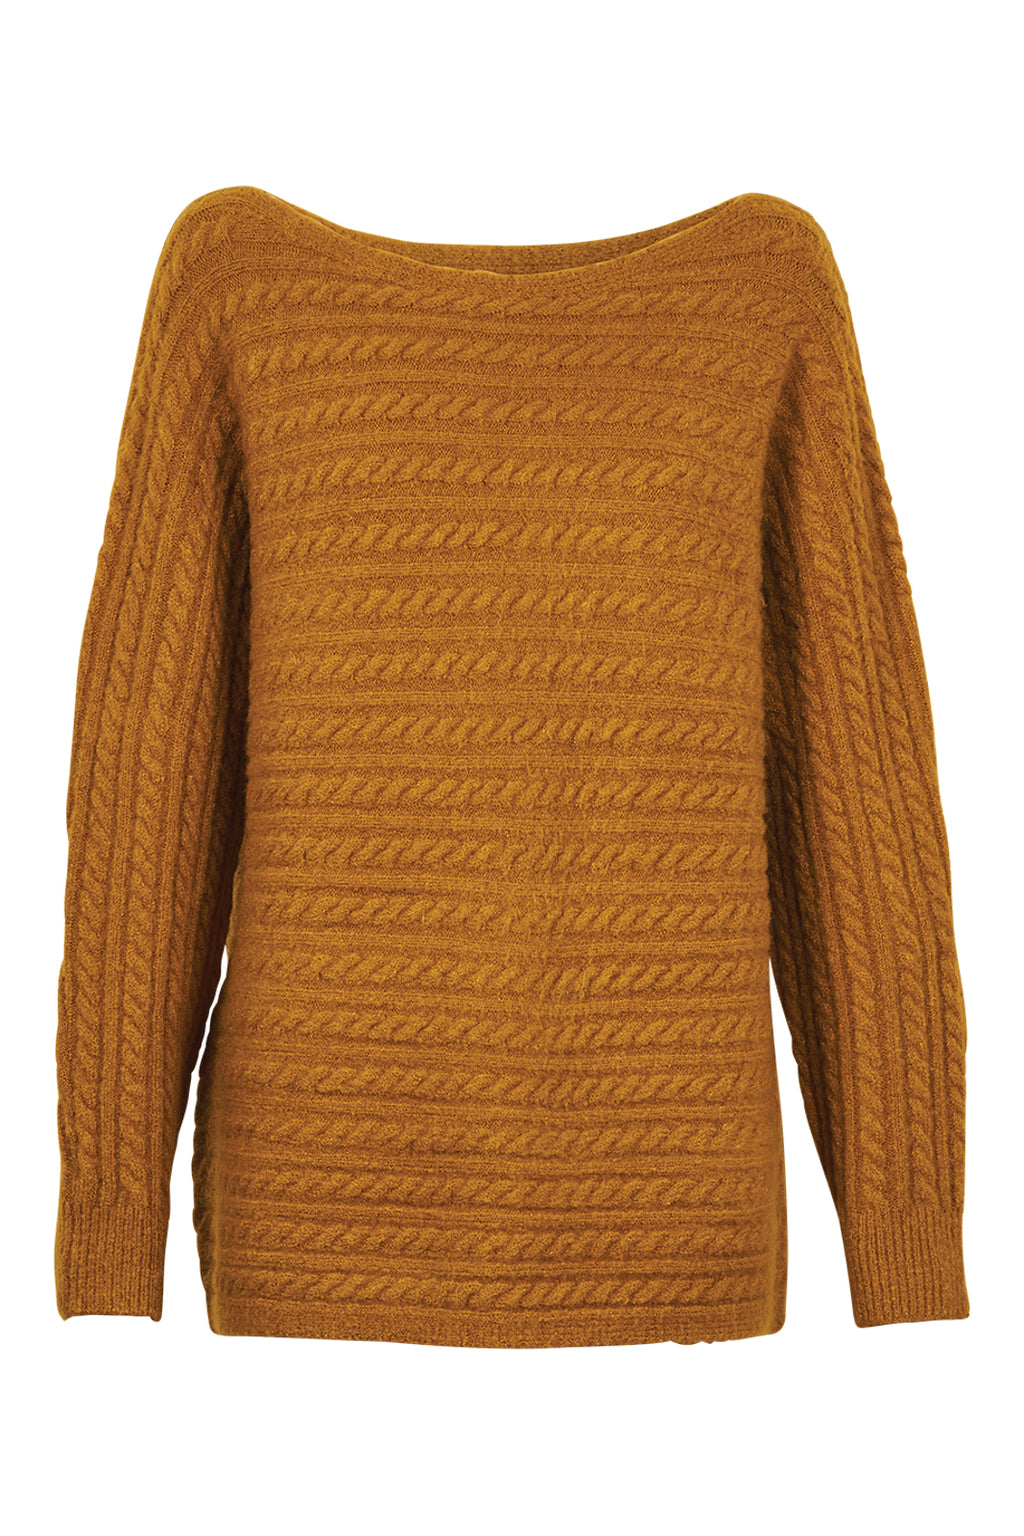 Cozy Knit - Saffron - Isle of Mine Clothing - Knit Jumper